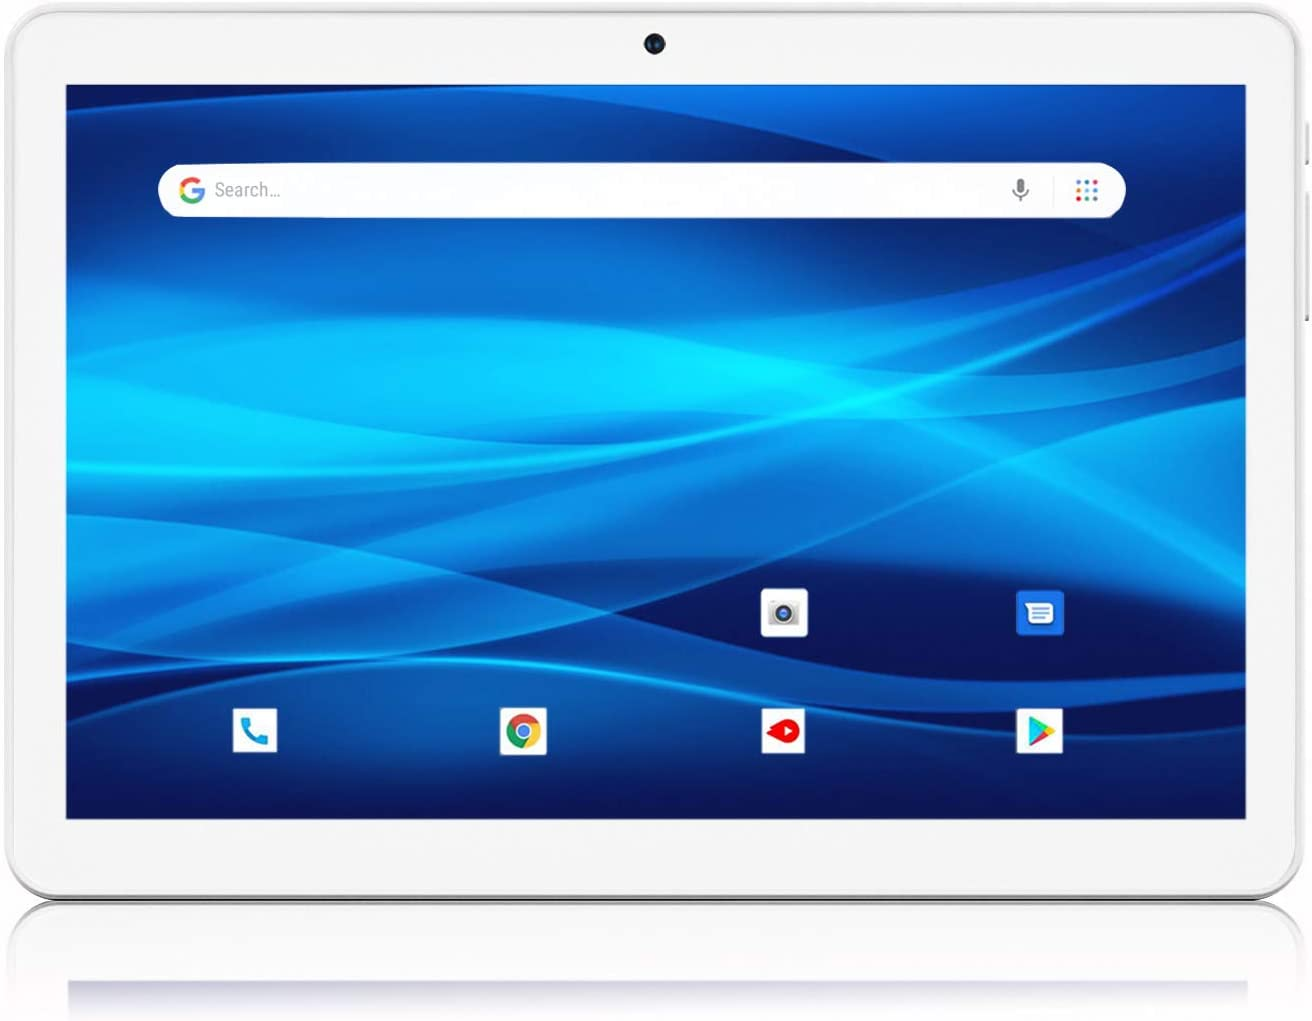 Android Tablet 10 Inch, 3G Phablet, Android 9.0 Tablets, 32GB Storage, GMS Certified, Dual SIM Card Slot and Cameras, WiFi, Bluetooth – Silver